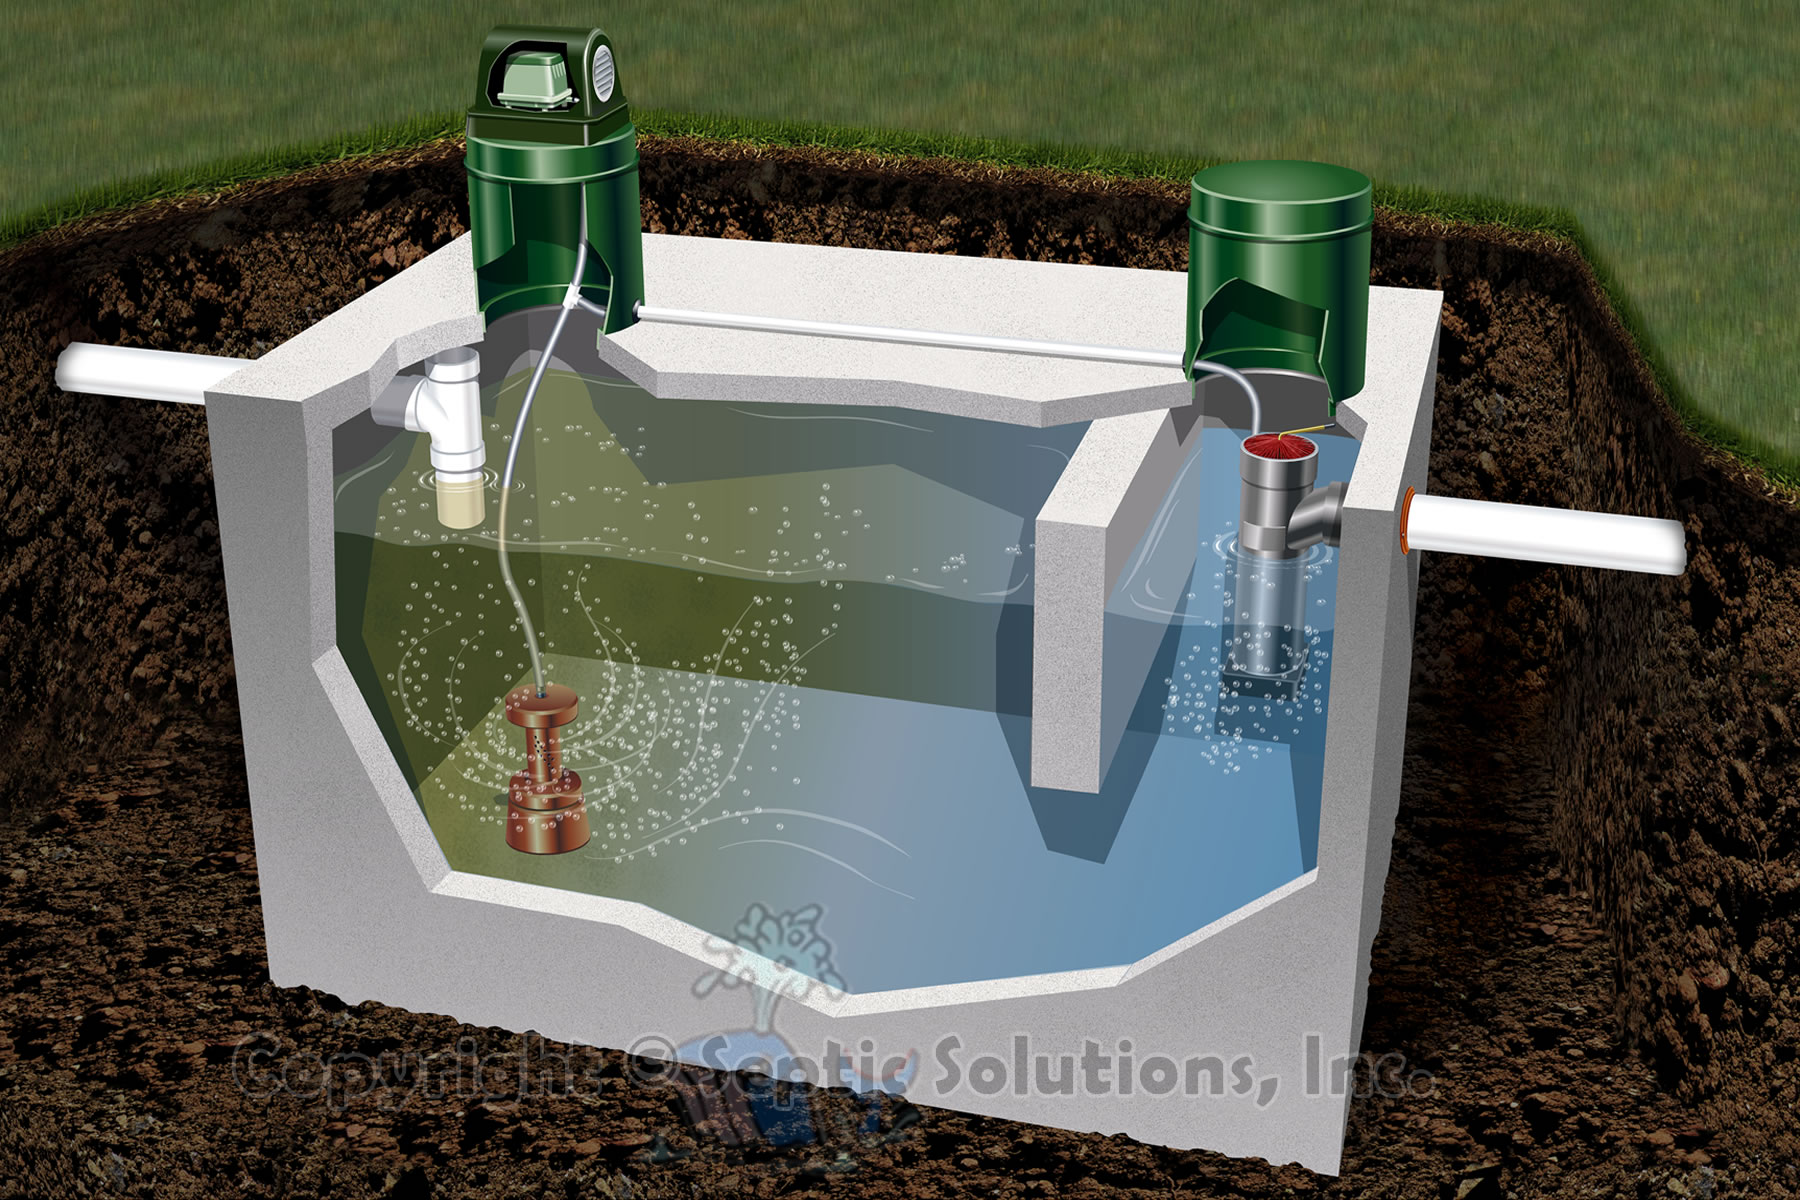 the sepaerator septic tank aerator fix septic system problems and failing septic systems